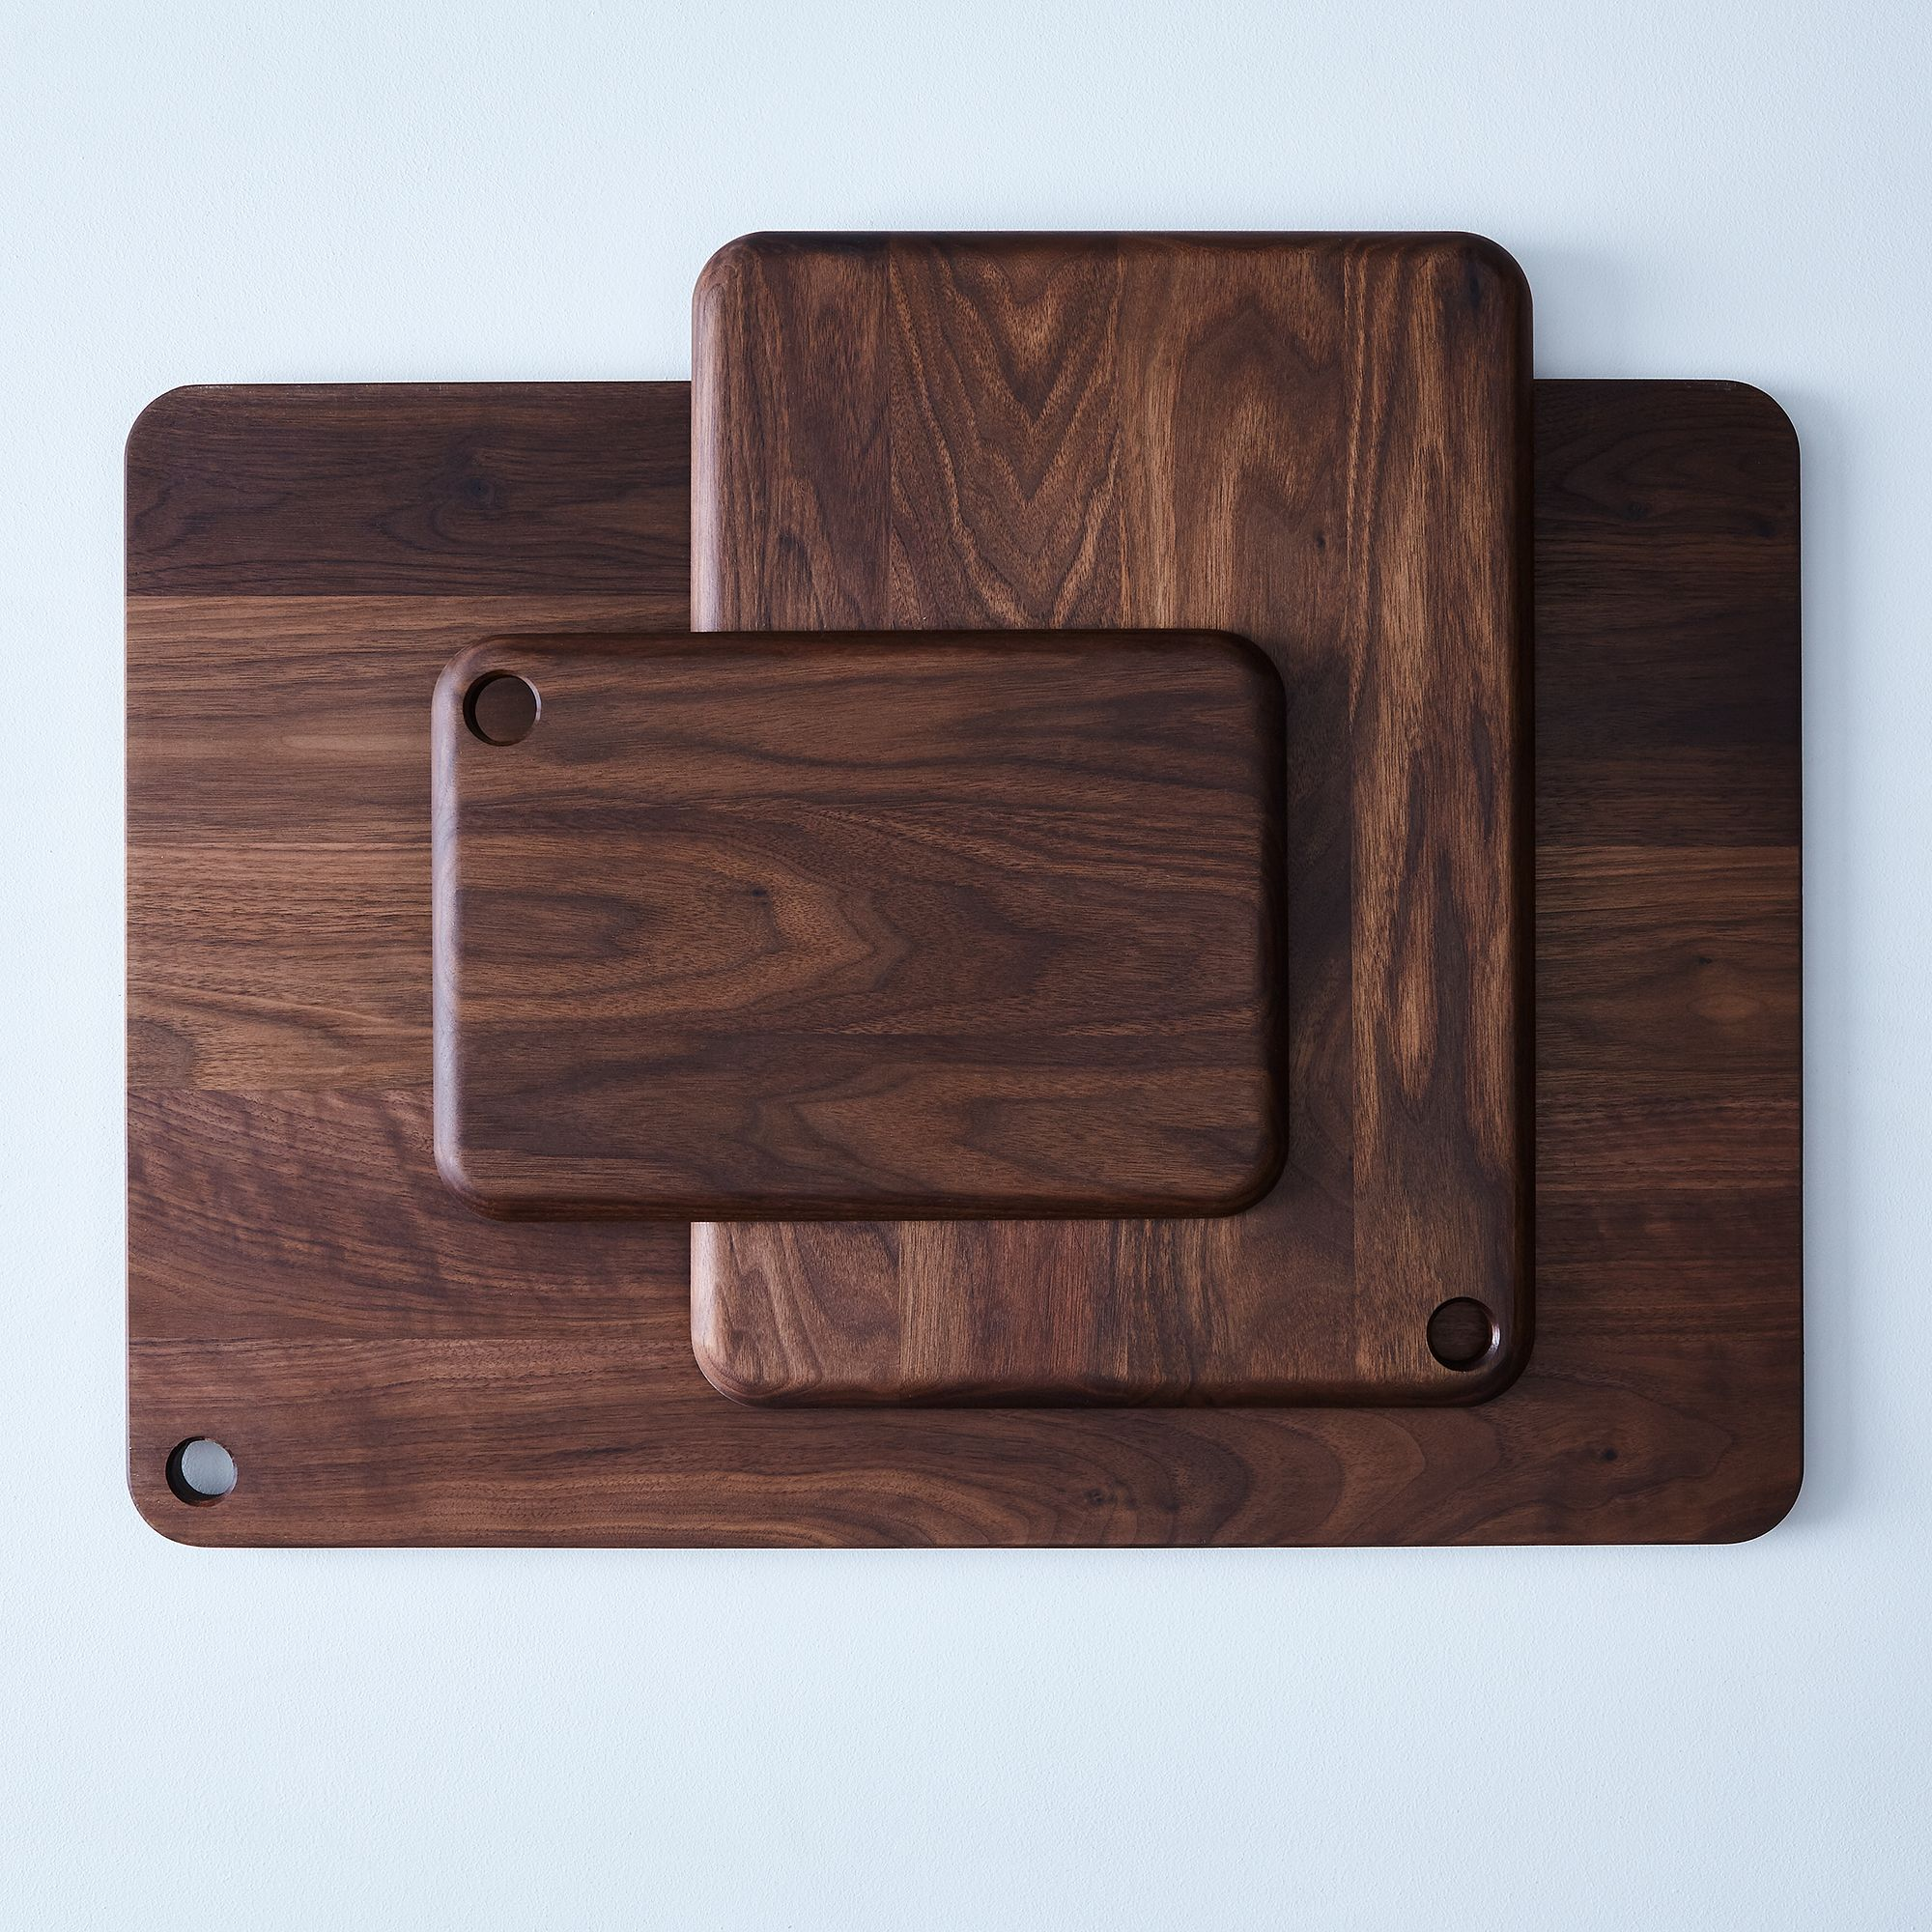 Knives Cutting Boards Kitchen Food52 Shop